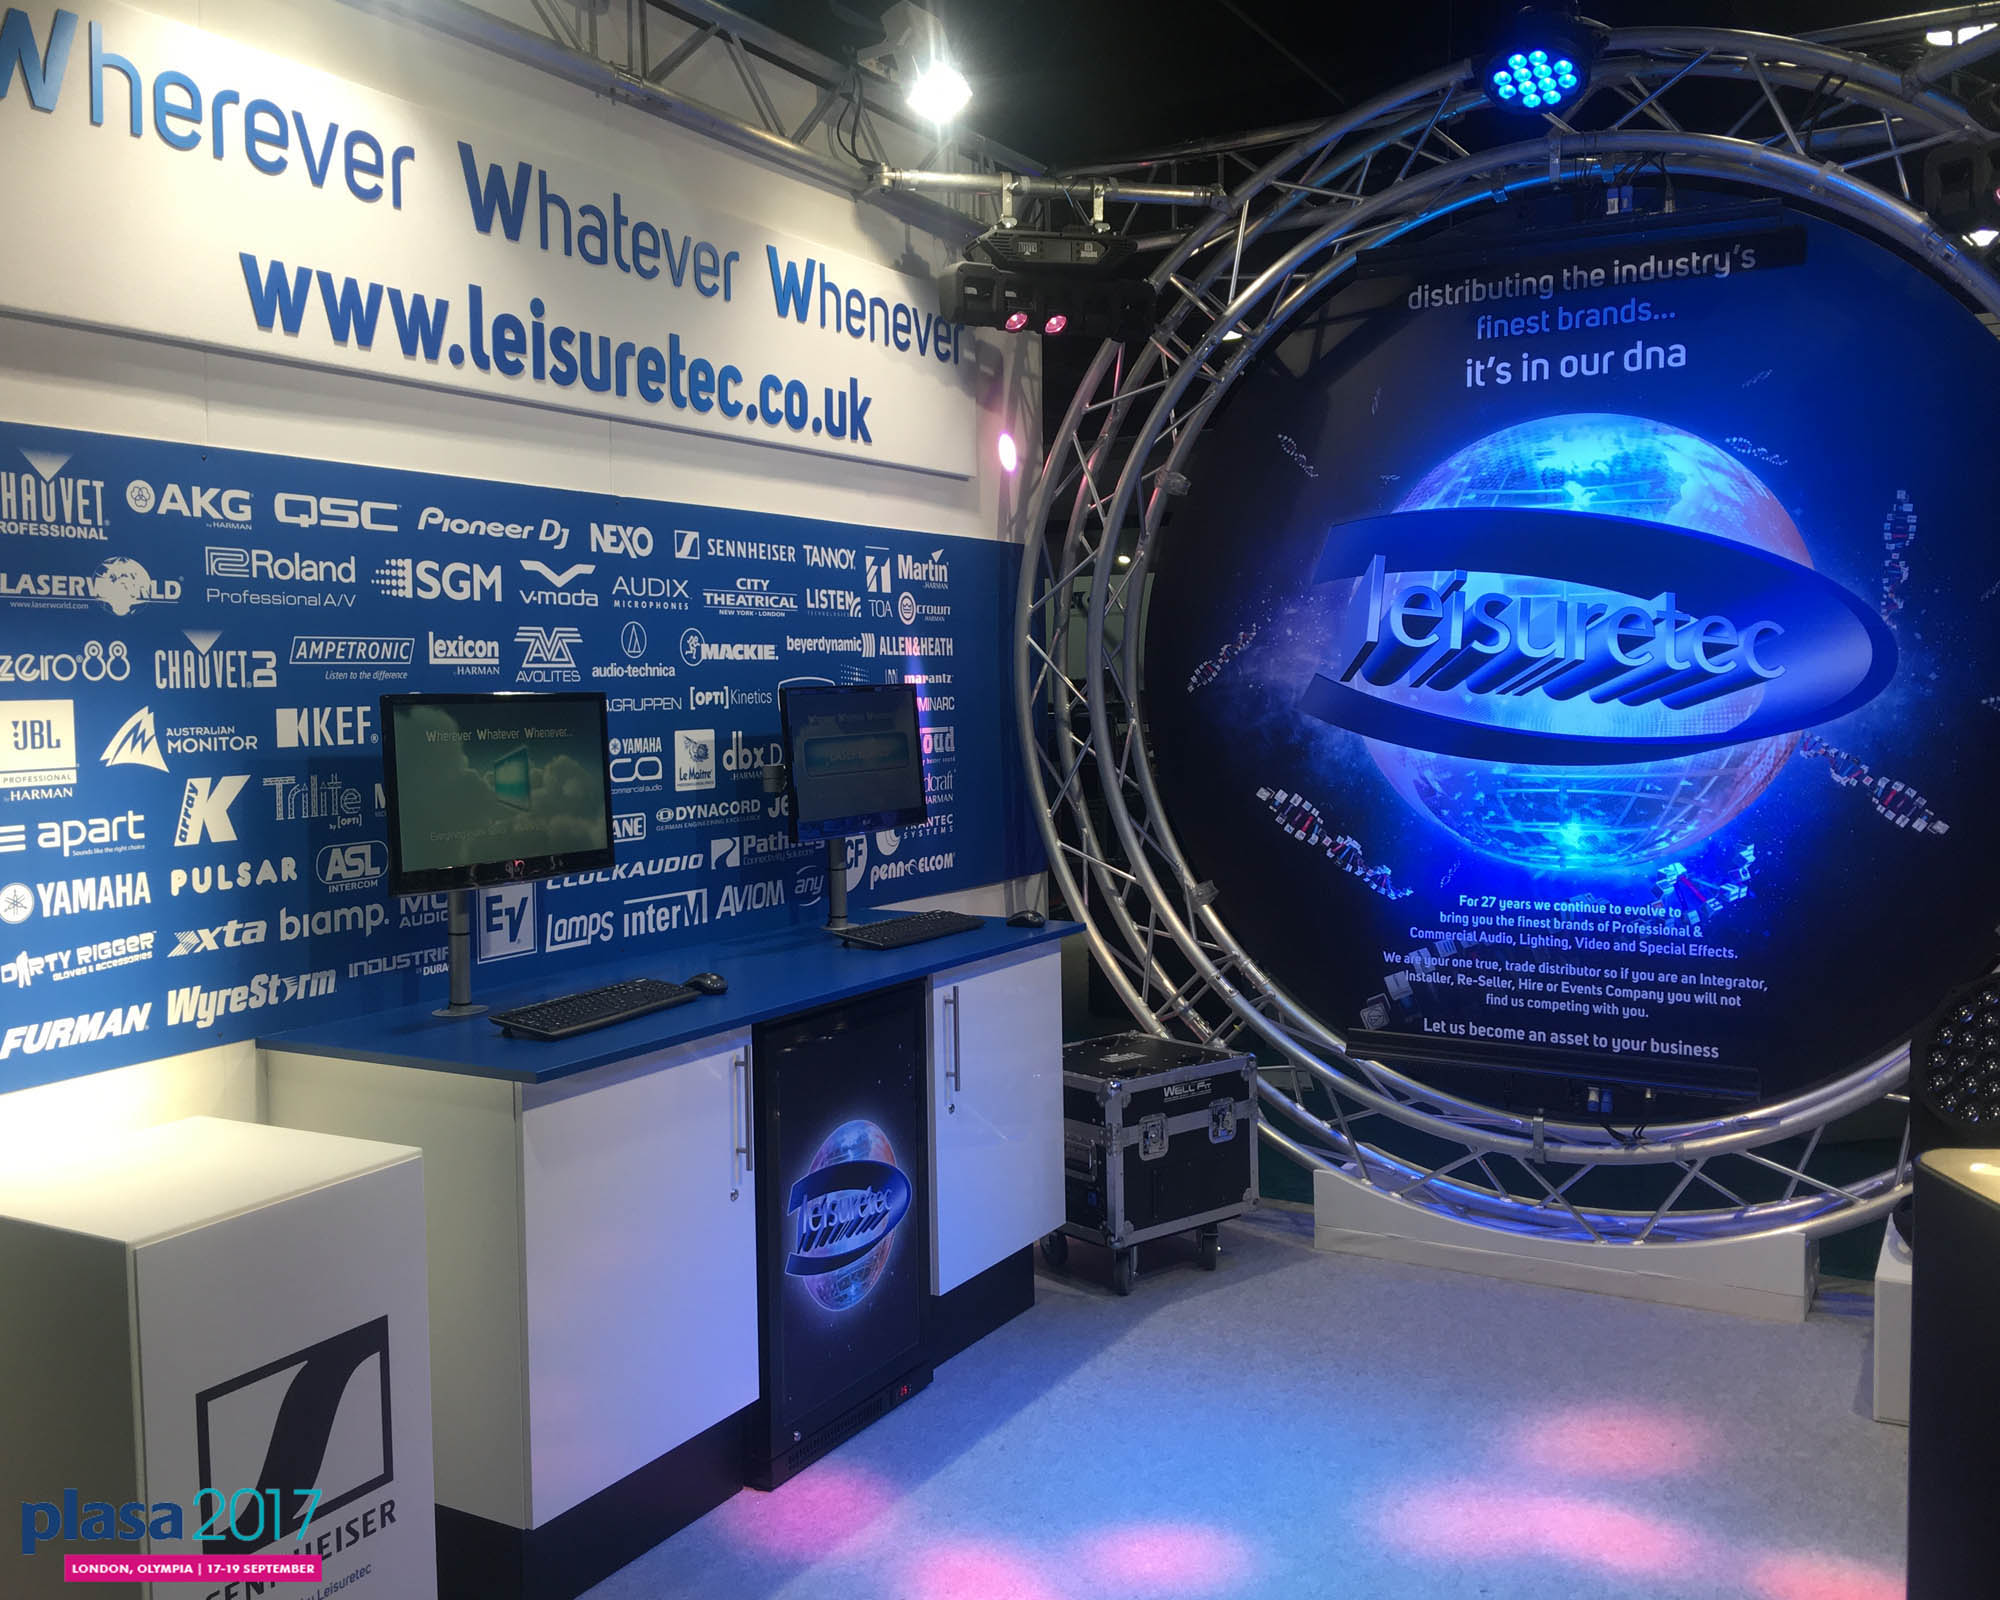 PLASA Show is back to celebrate its 40th Anniversary